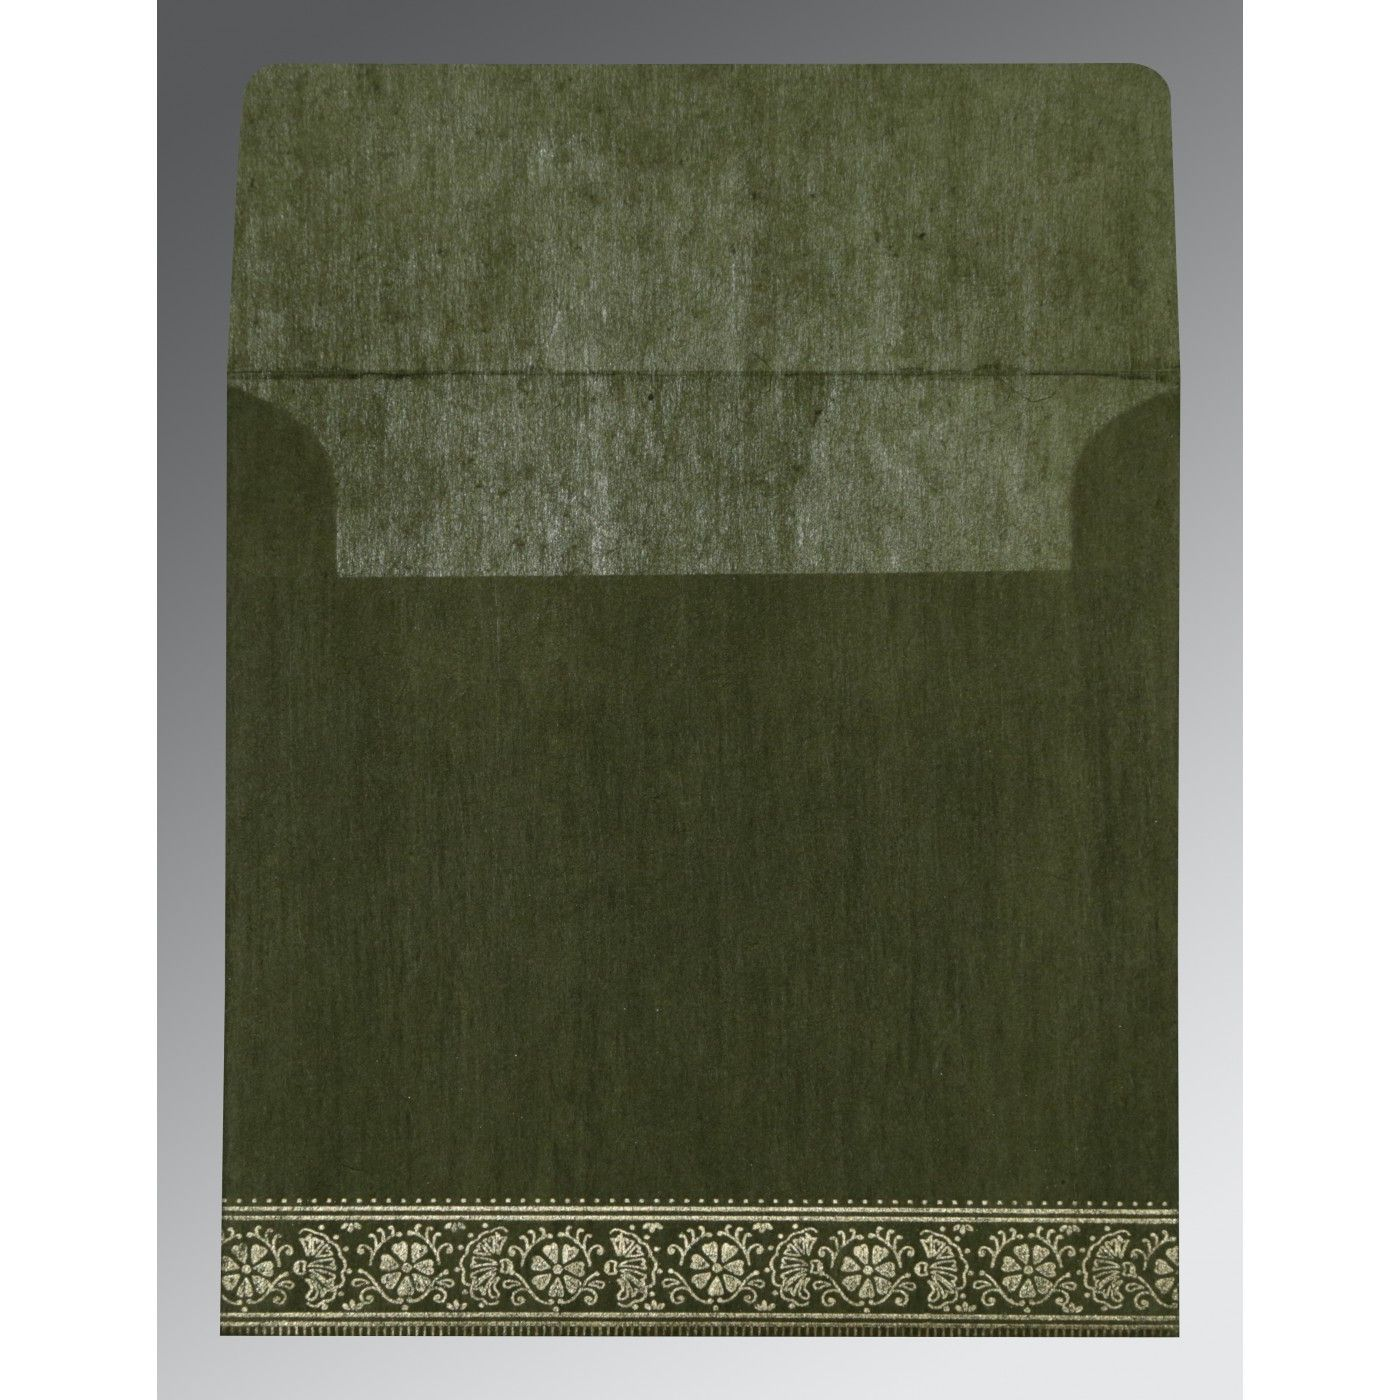 DARK OLIVE GREEN WOOLY FOIL STAMPED WEDDING CARD : CS-8242O - IndianWeddingCards